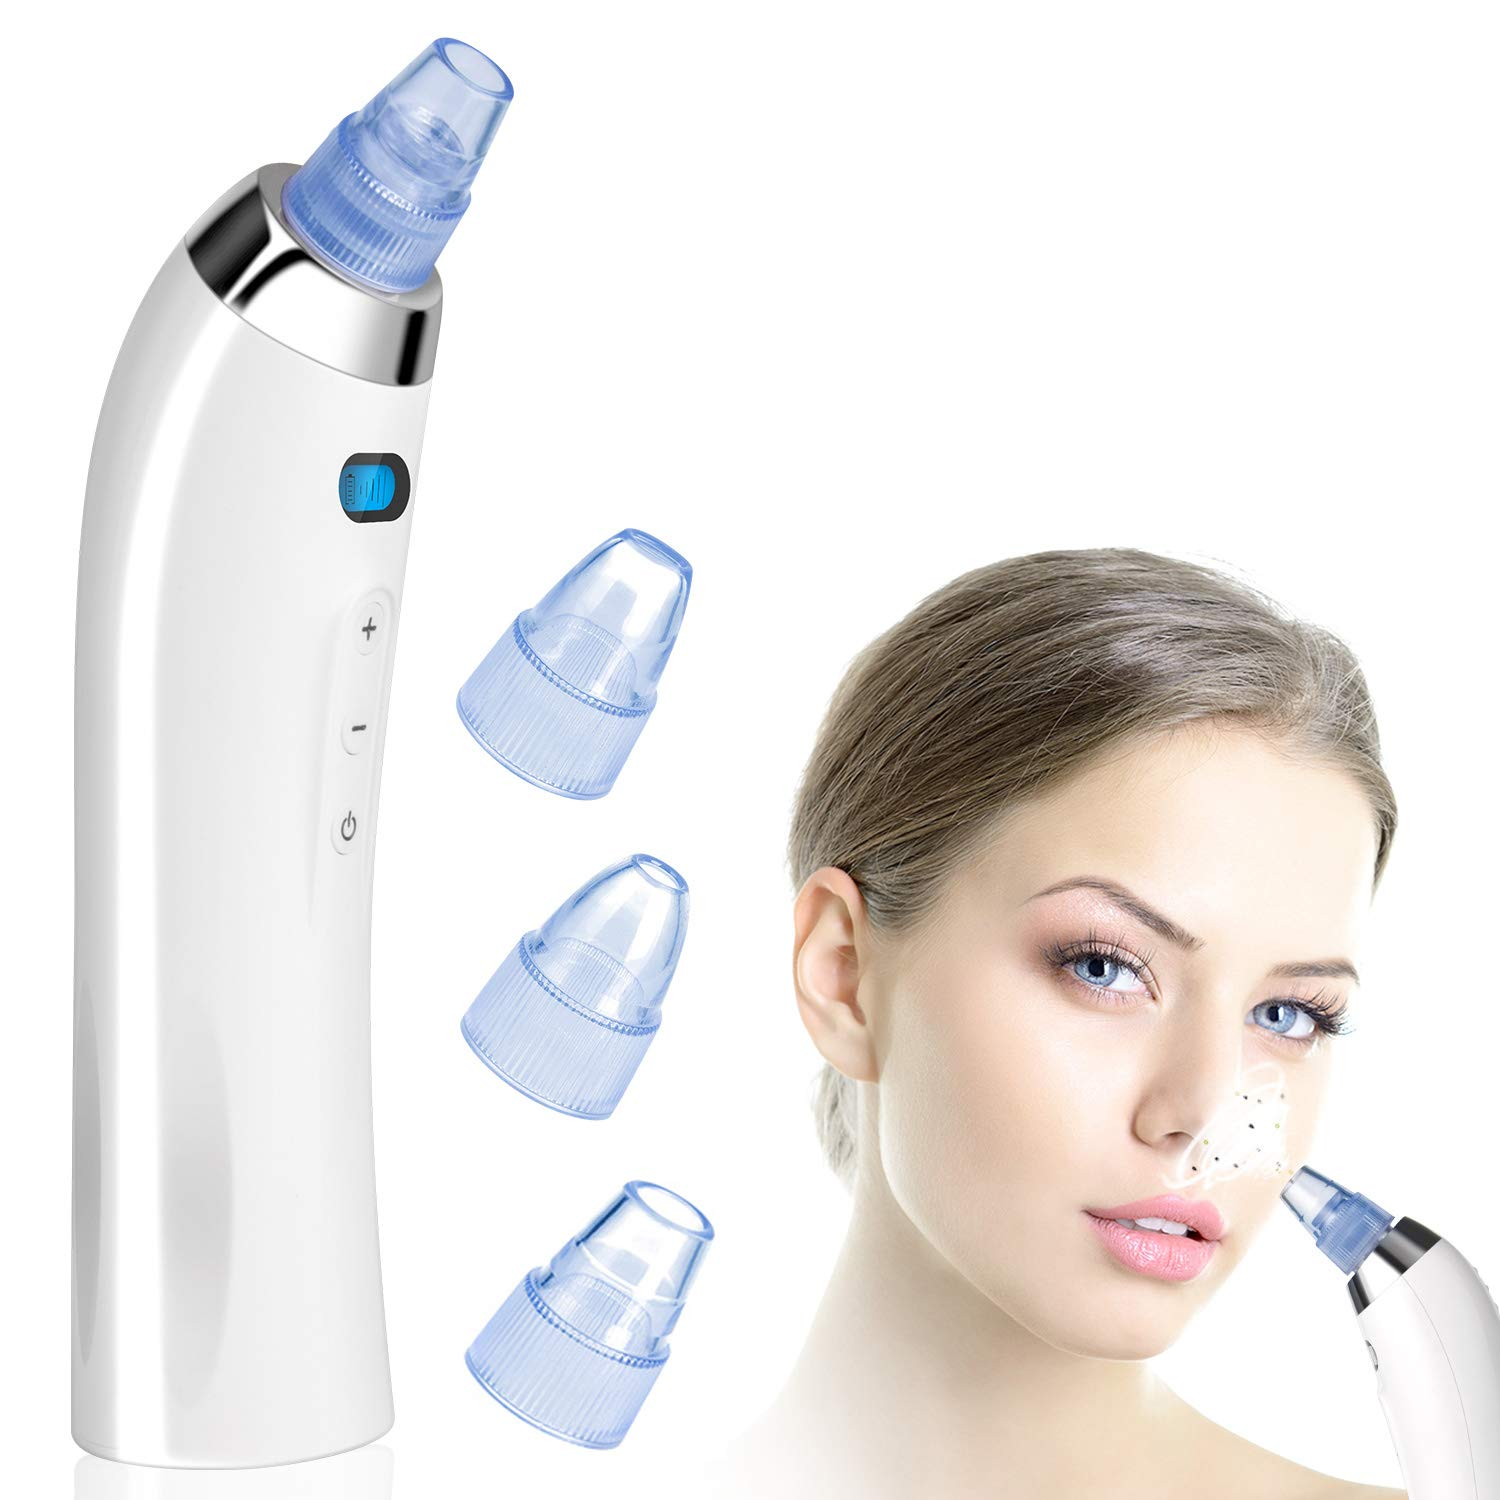 Blackhead Remover Pore Vacuum Electric Acne Comedo Extractor Tool USB  Rechargeable Blackhead Suction Advanced Skin Therapy Kit Blackhead Vacuum  Suction Remover Restore Radiance & Beauty for Skin: Beauty cjp.org.in